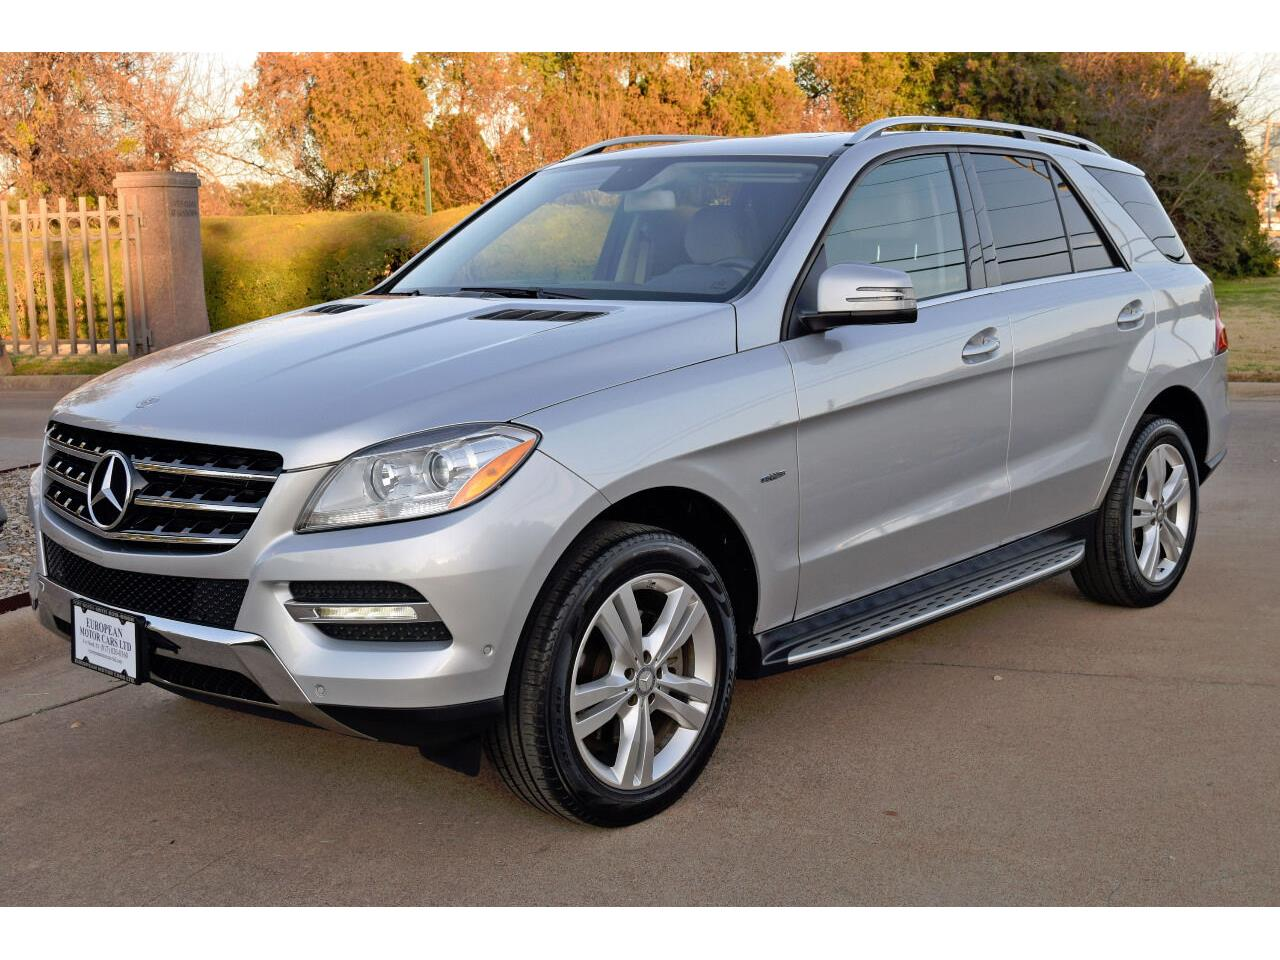 2012 Mercedes-Benz M-Class (CC-1312943) for sale in Fort Worth, Texas